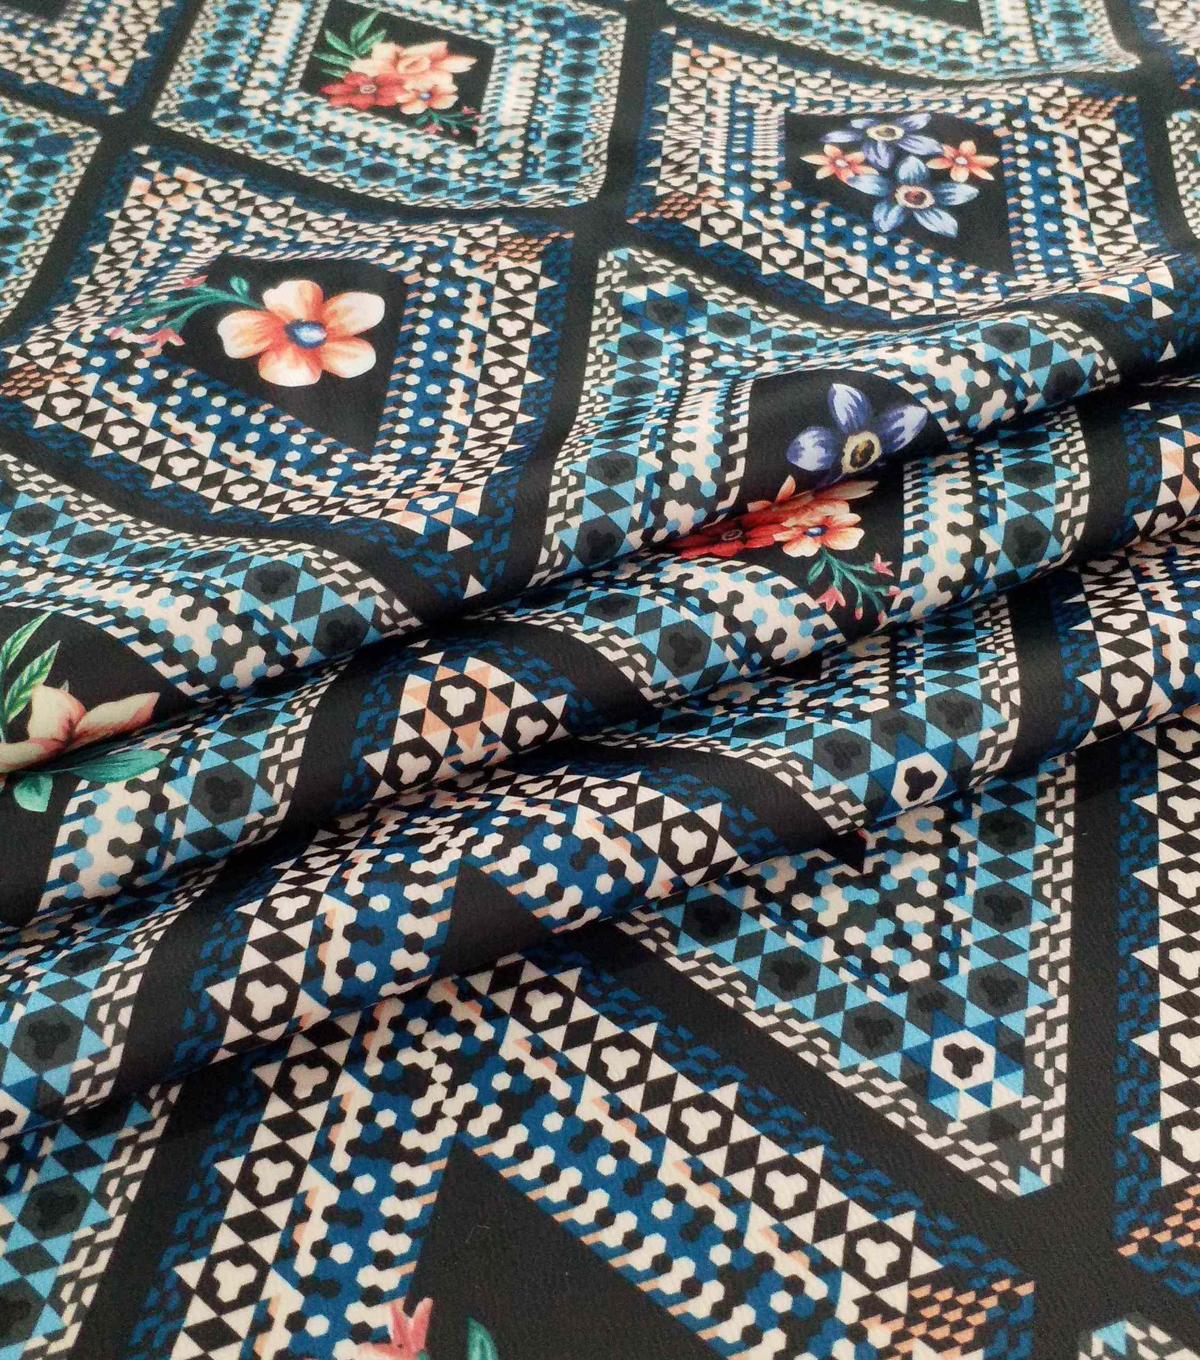 Silky Stretch Satin Textured Fabric-Diamond & Floral on Black